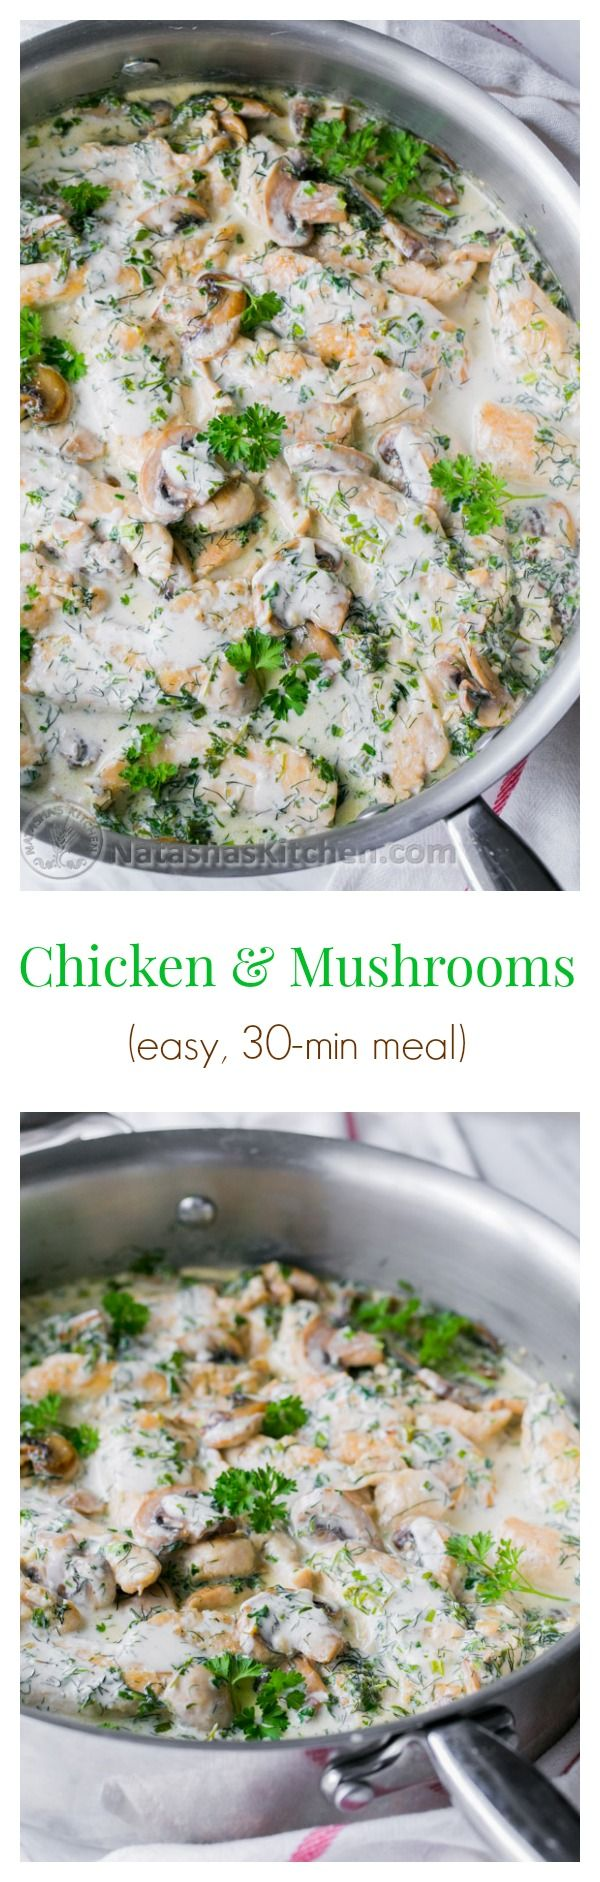 Thick-sliced golden mushrooms and juicy chicken bathed in a flavorful and creamy herb sauce…. A 30 minute meal @natashaskitchen